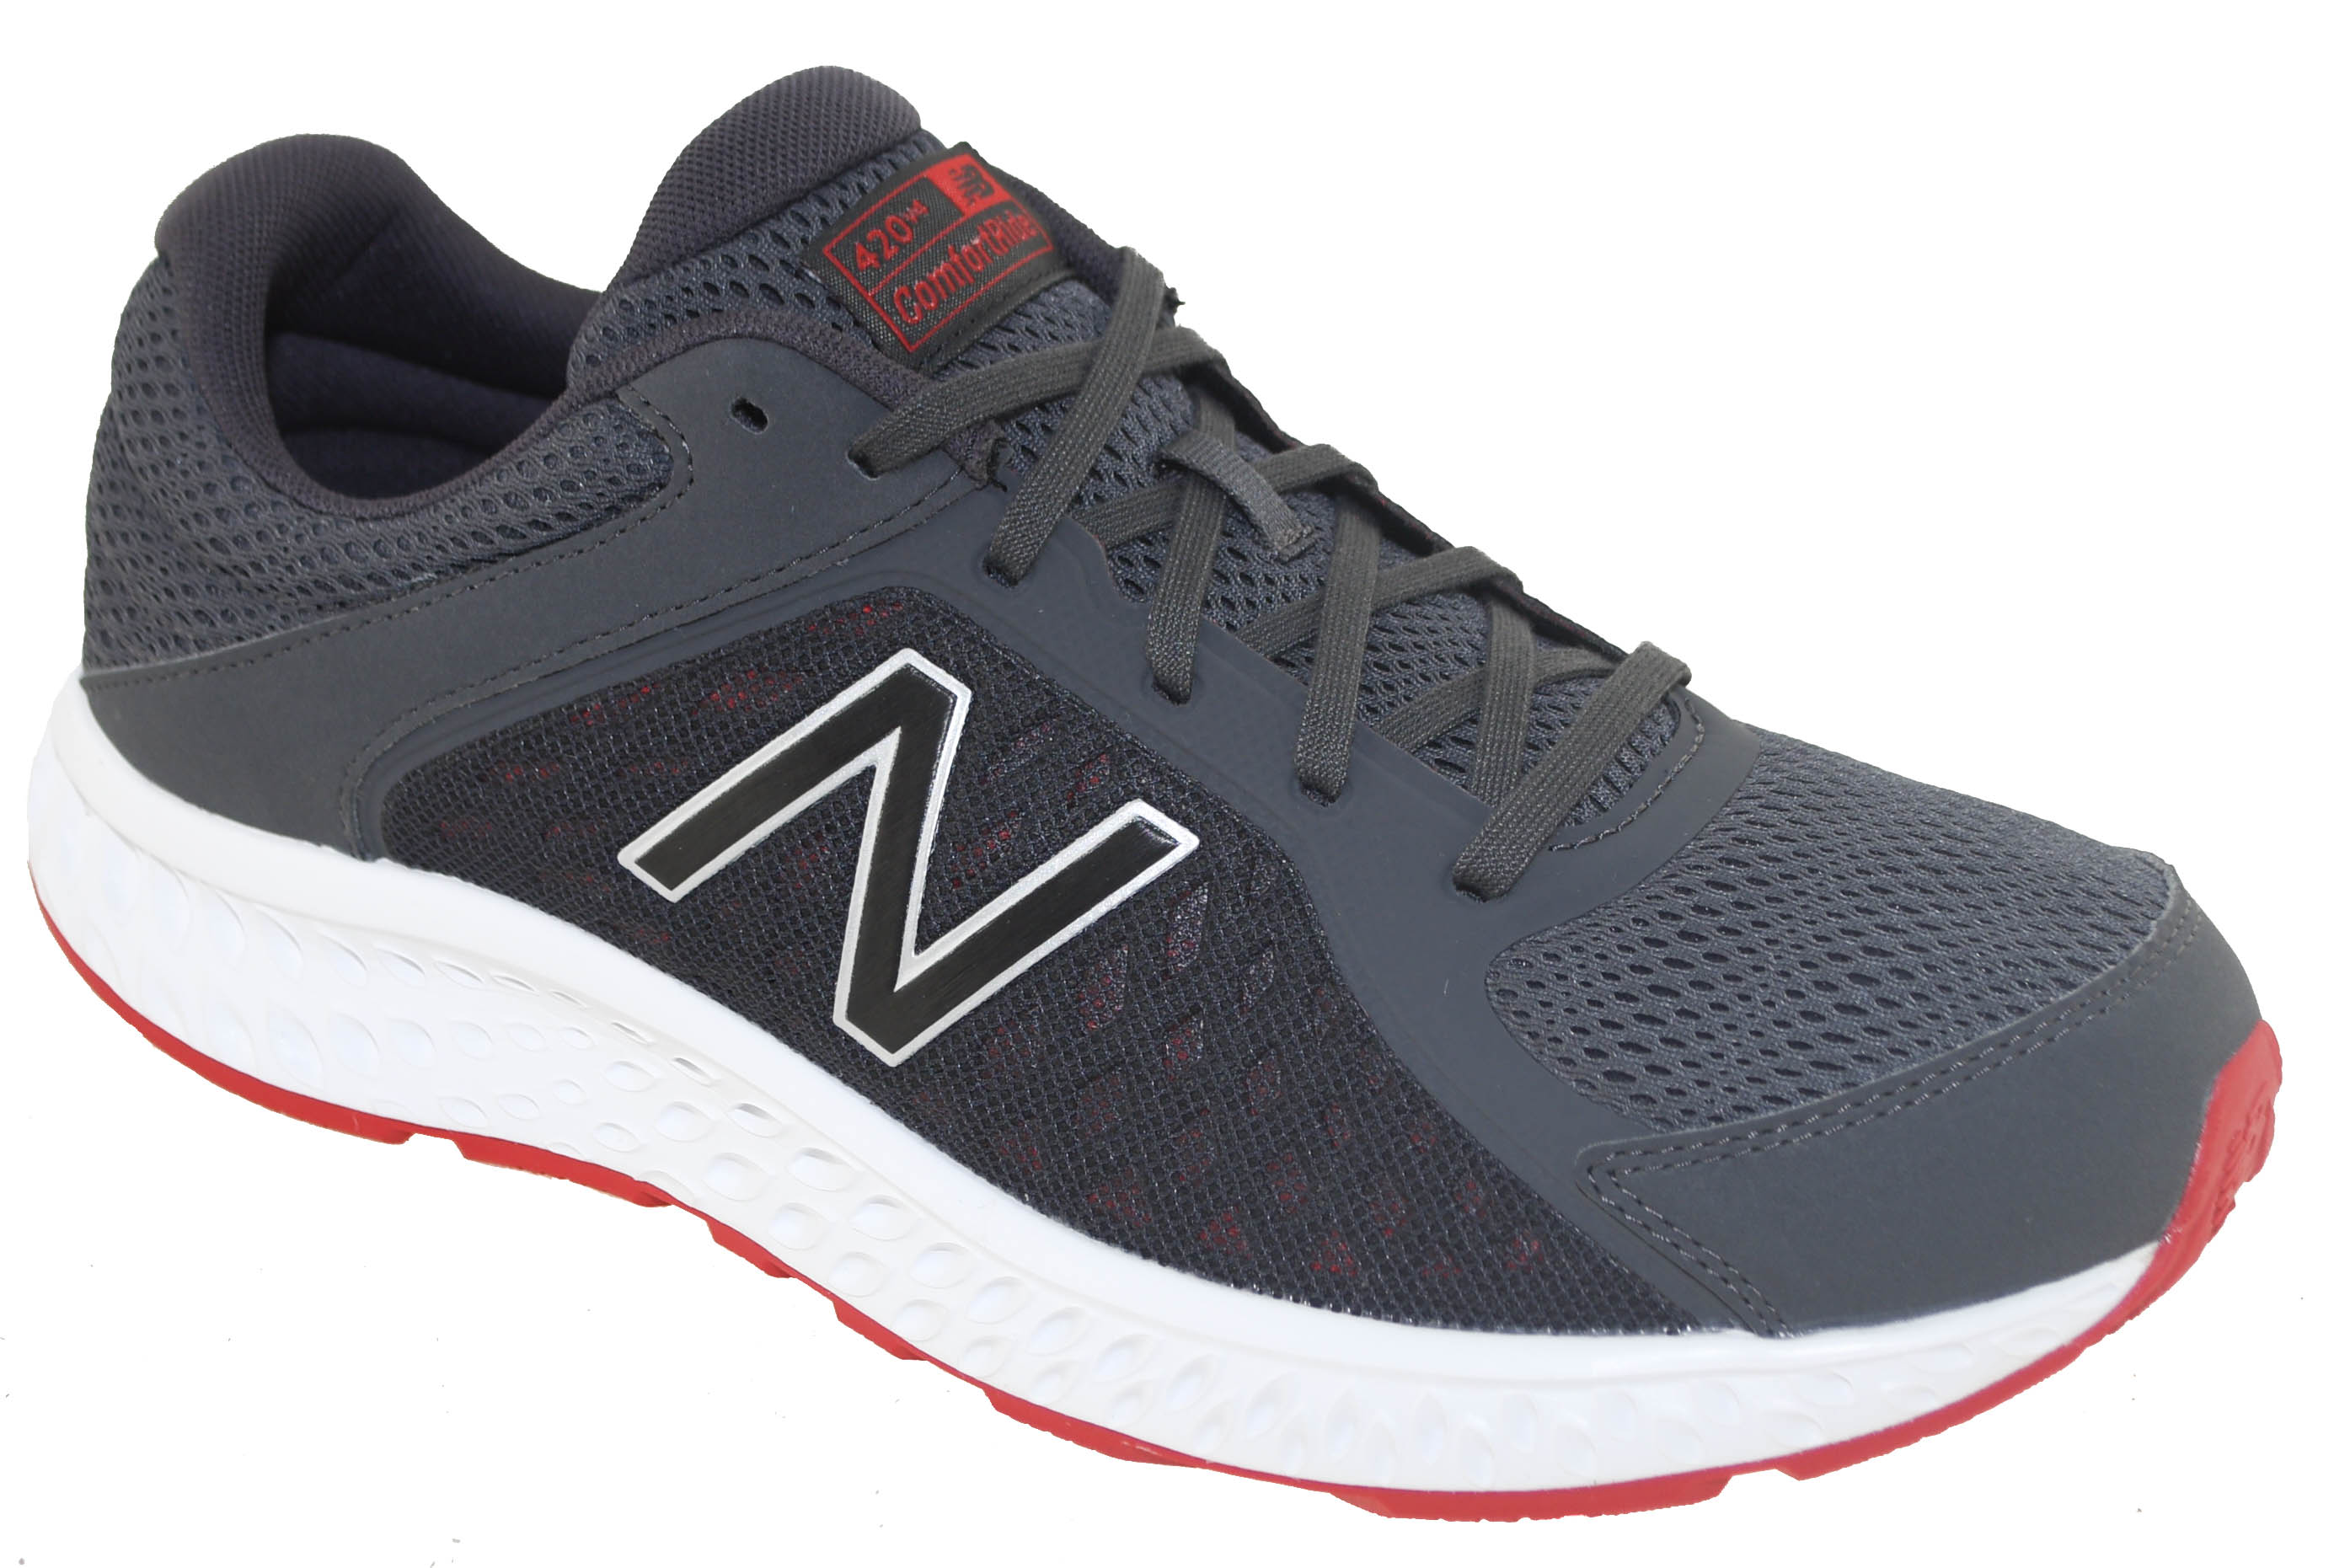 Details about New Balance Mens Running Shoes 420 M420LM4